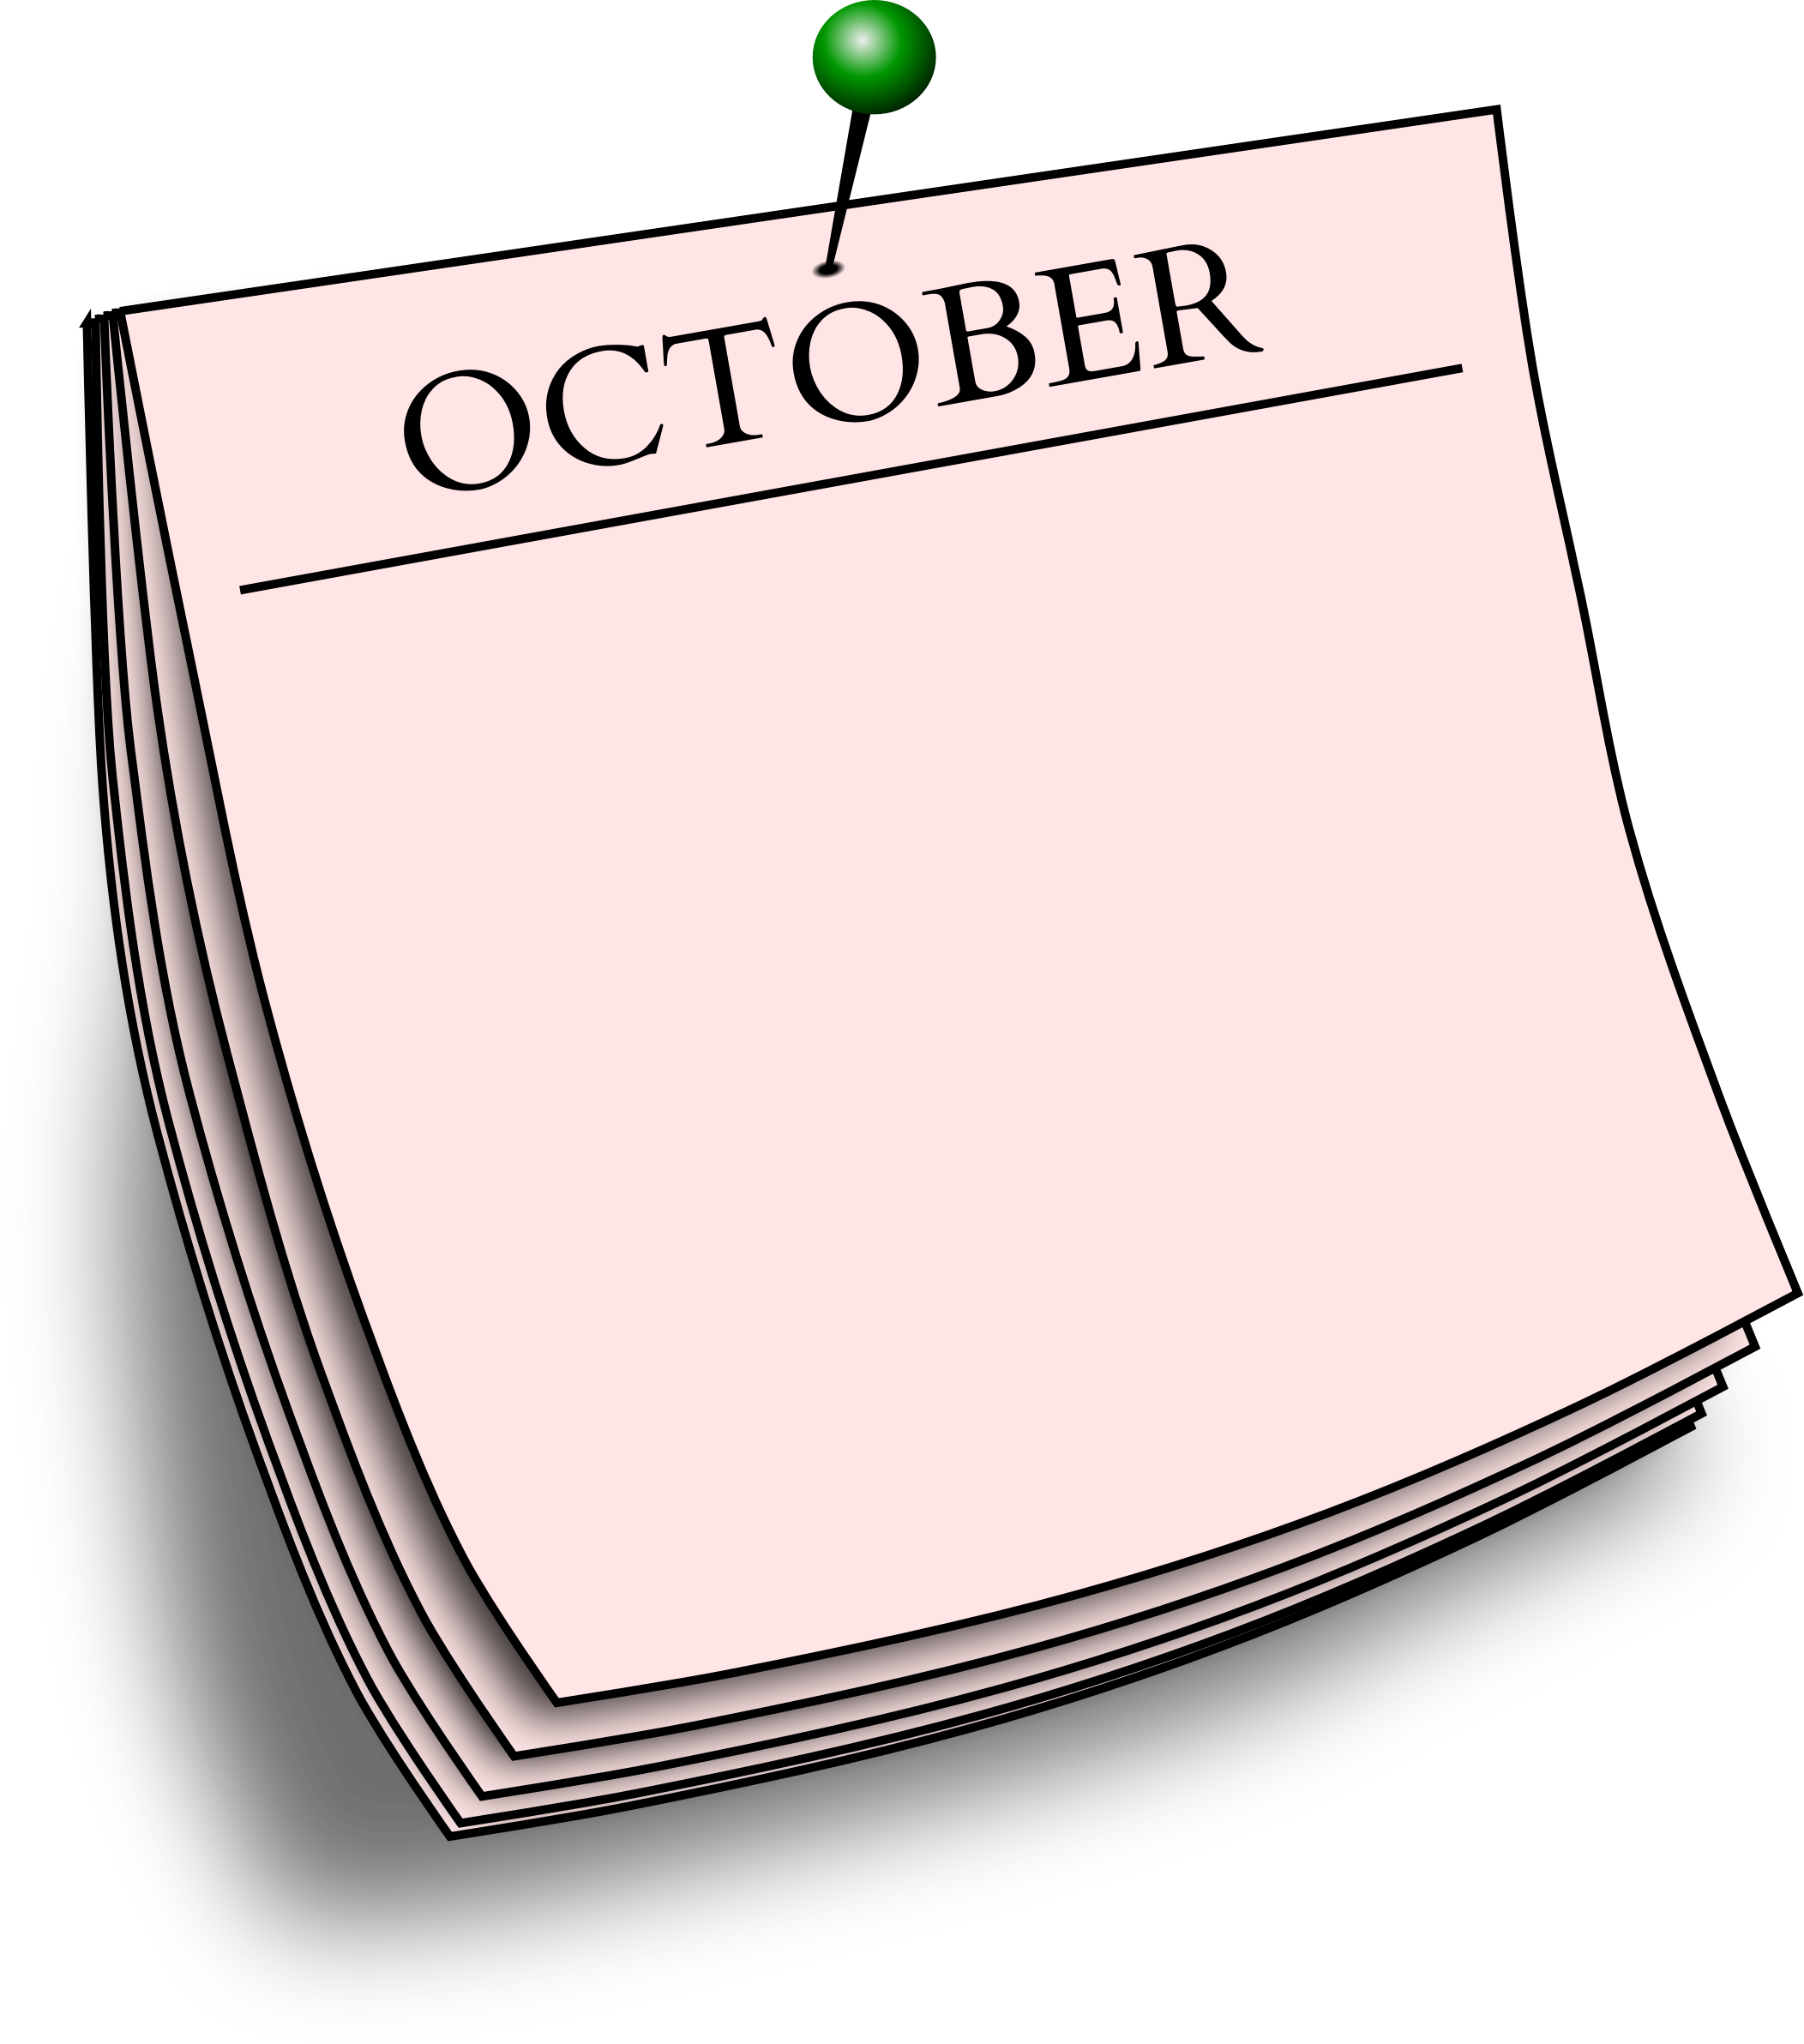 Monthly note - October by Firkin